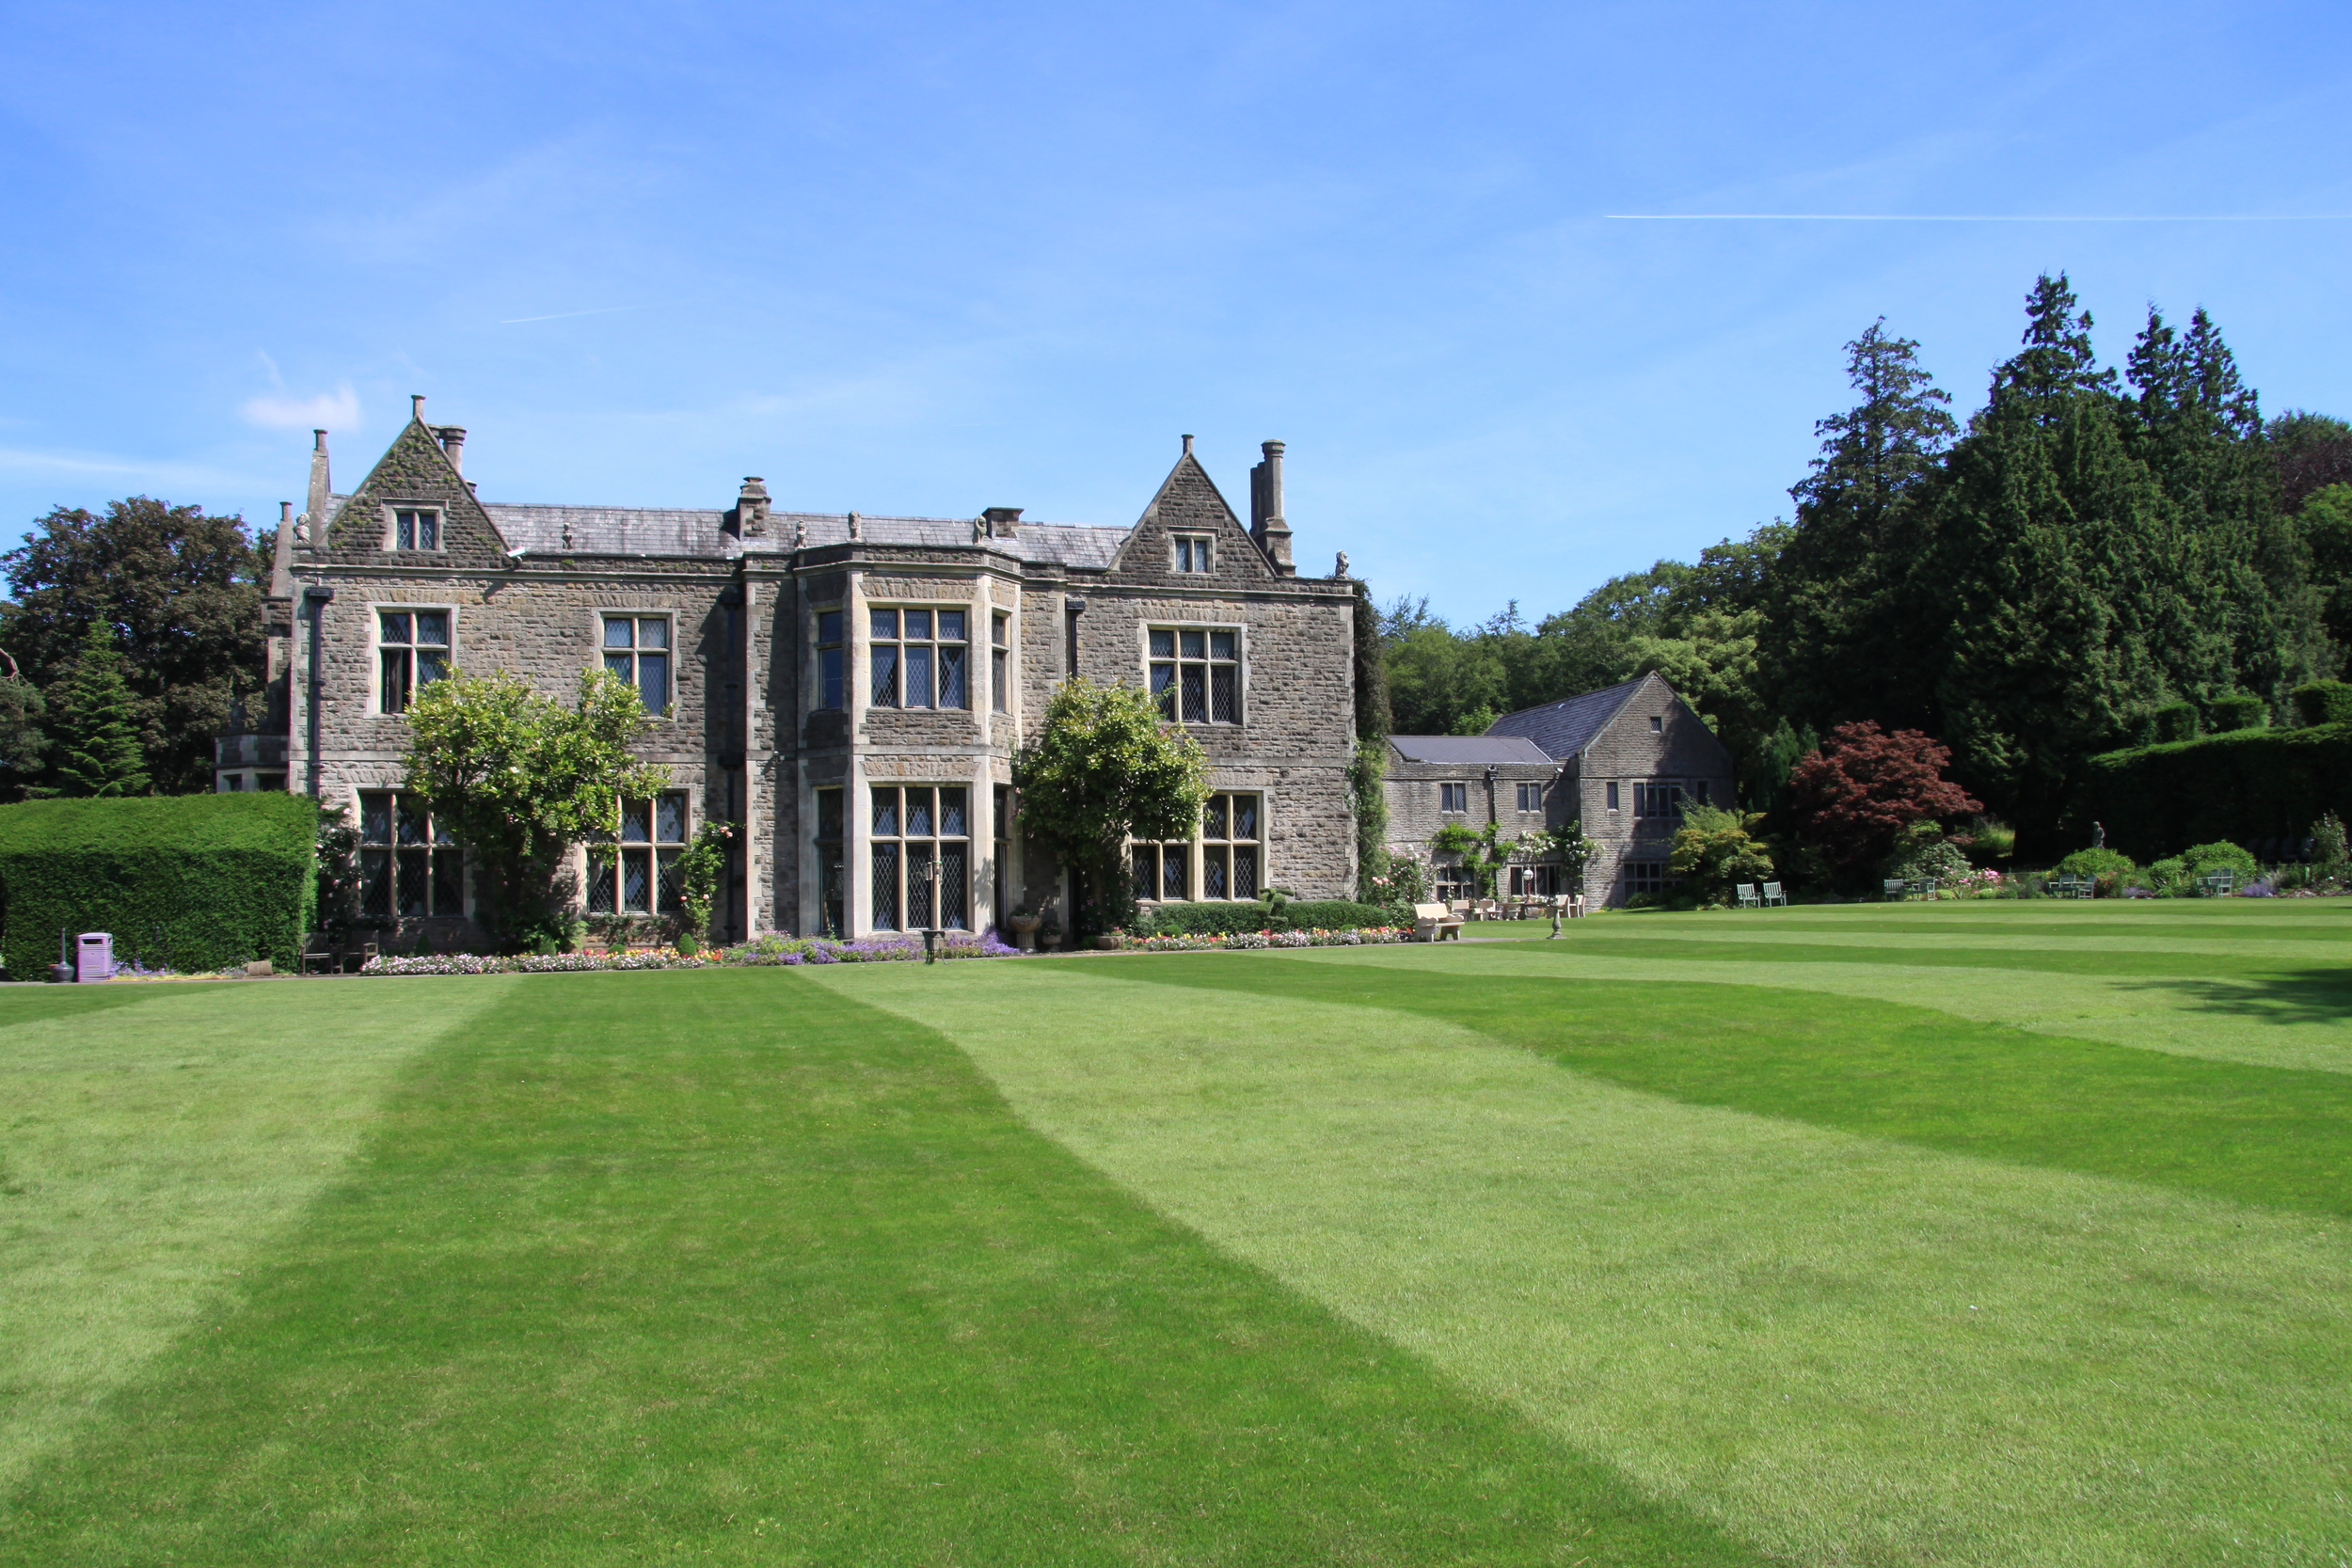 Side view of Miskin Manor, in Cardiff, Wales.